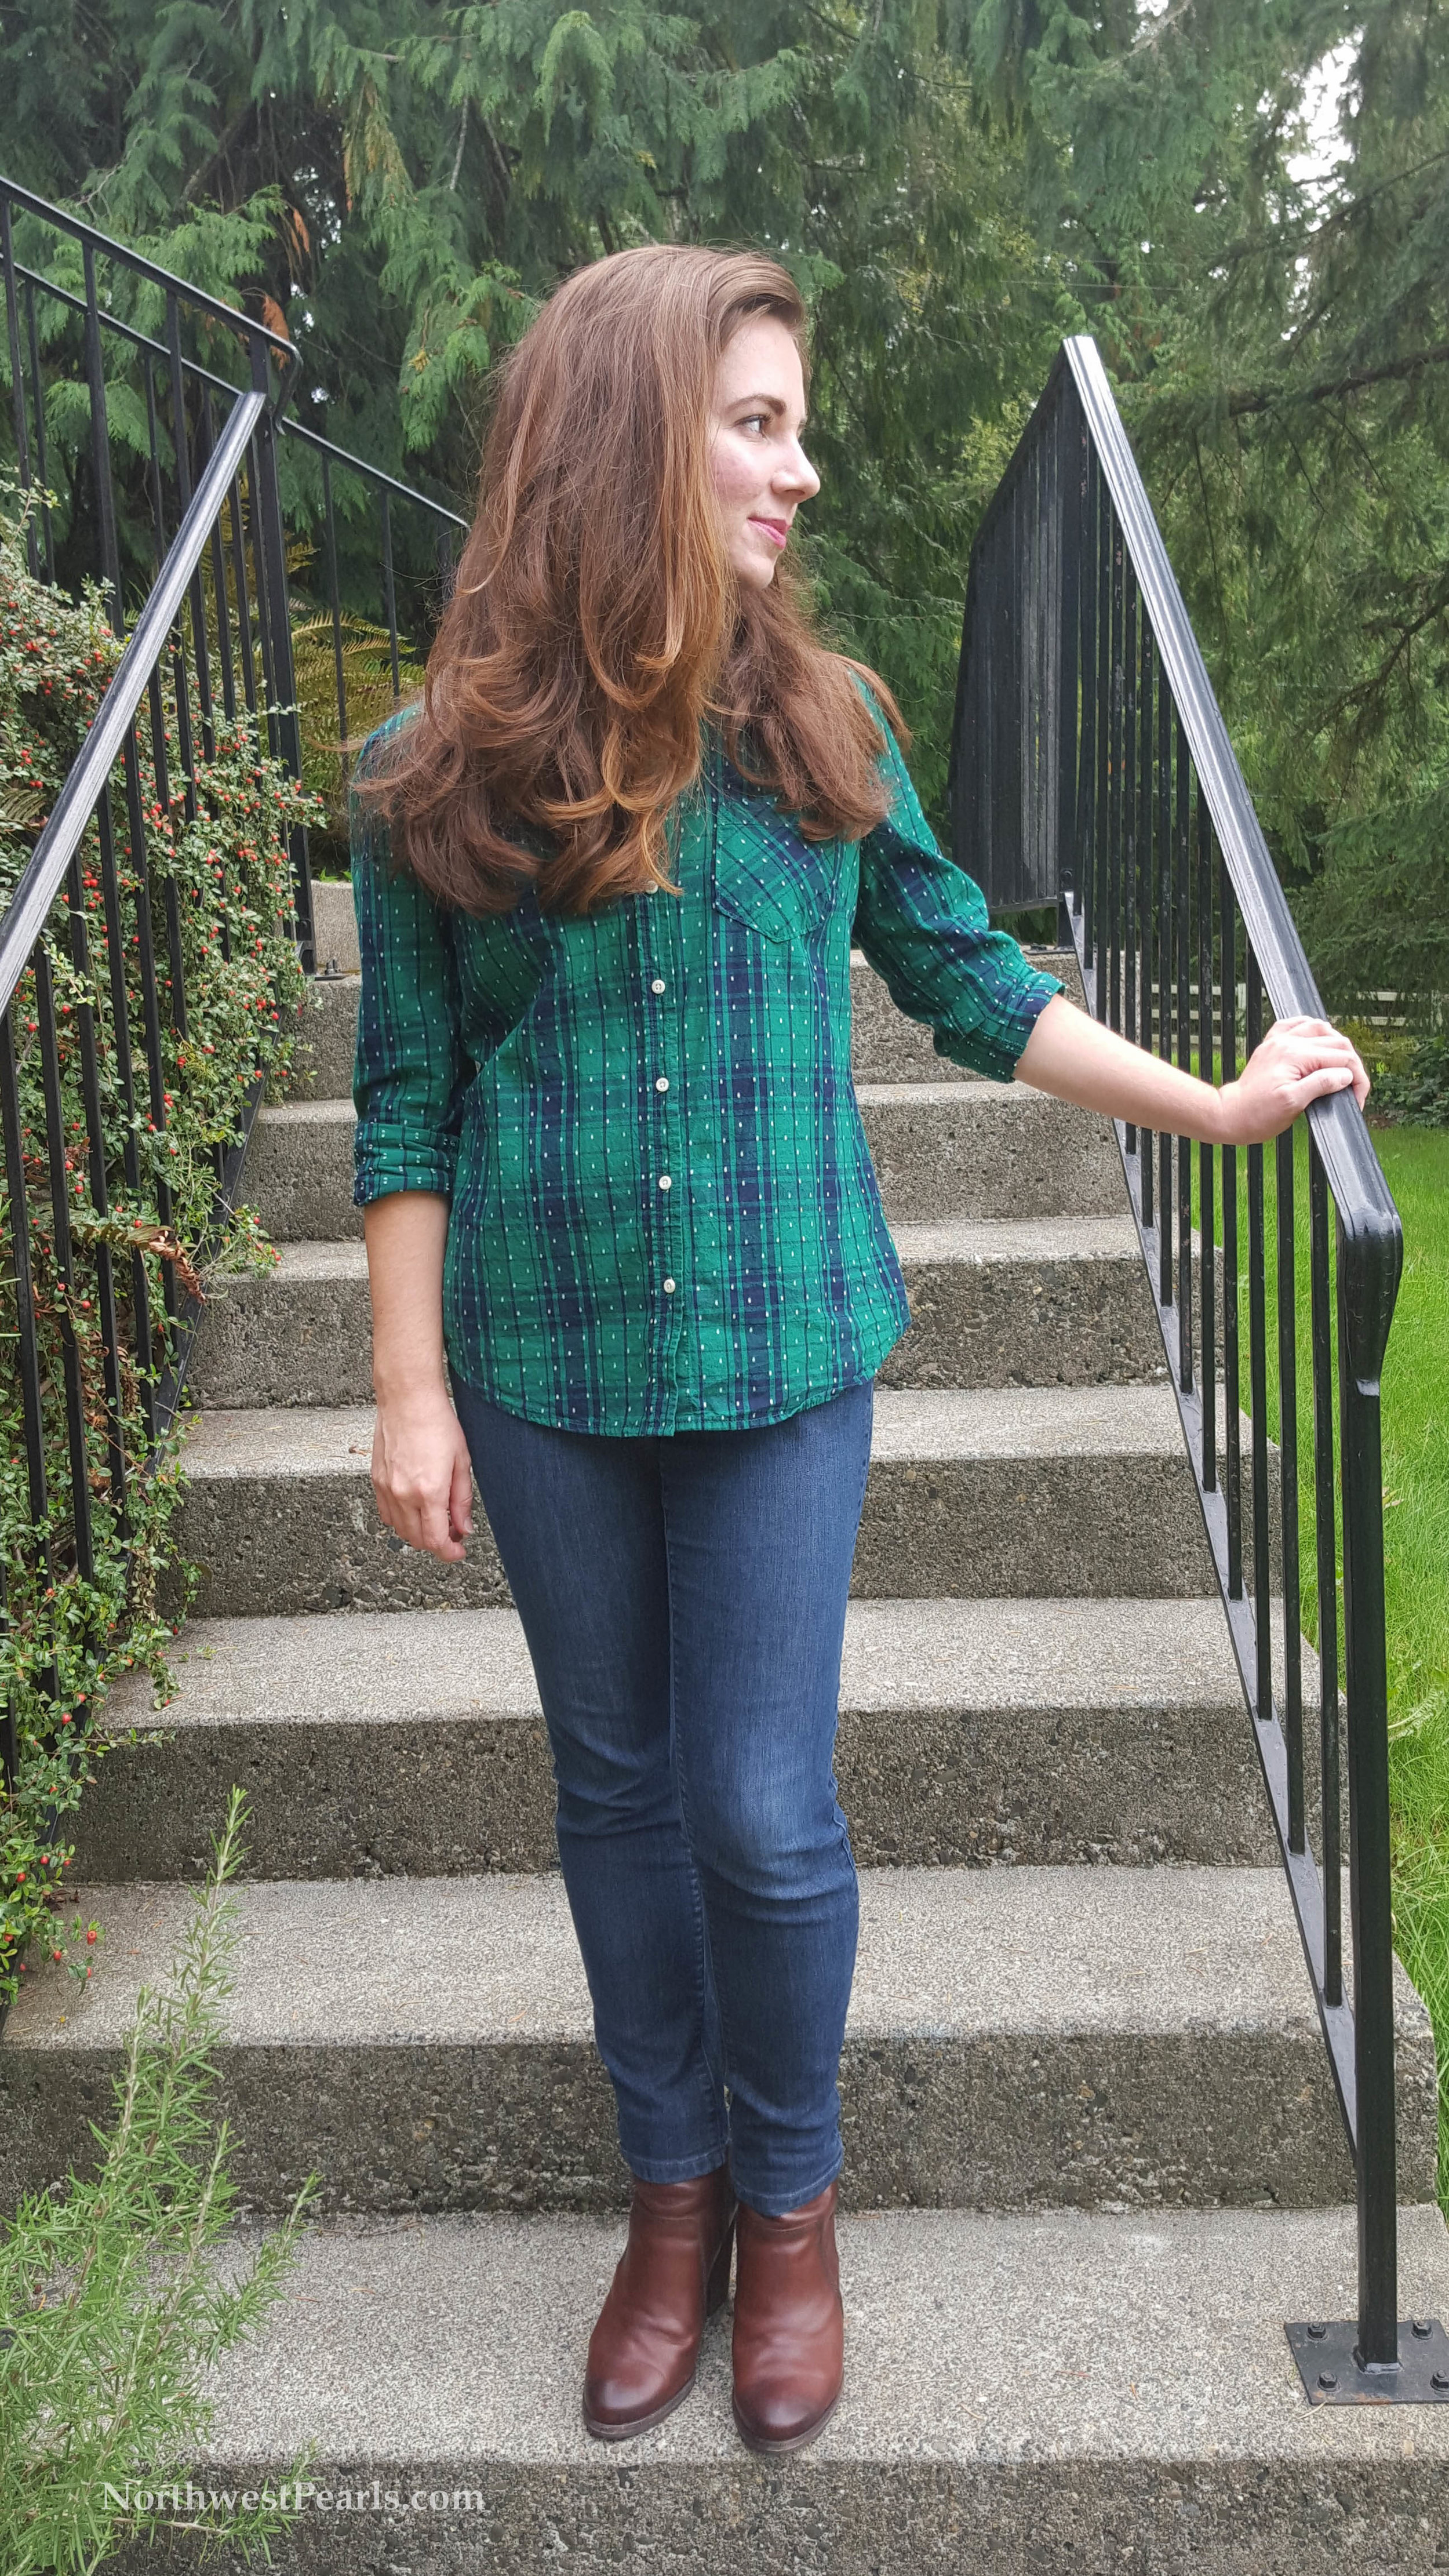 Northwest Pearls: Plaid for Fall